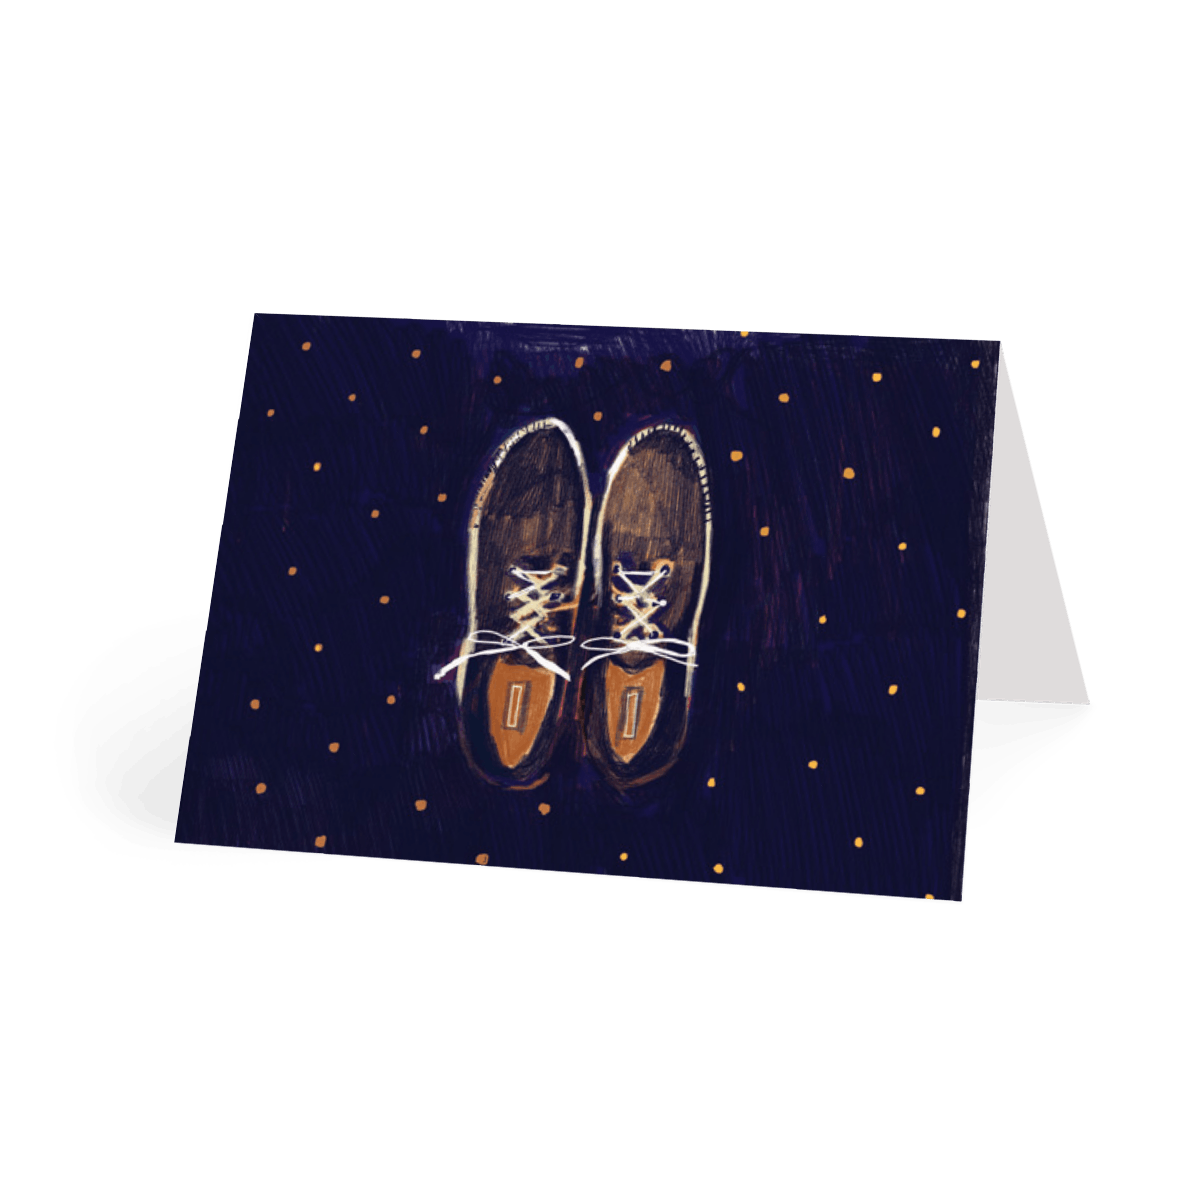 Https%3a%2f%2fwww.papier.com%2fproduct image%2f29204%2f14%2fhis shoes 7334 front 1507744518.png?ixlib=rb 1.1